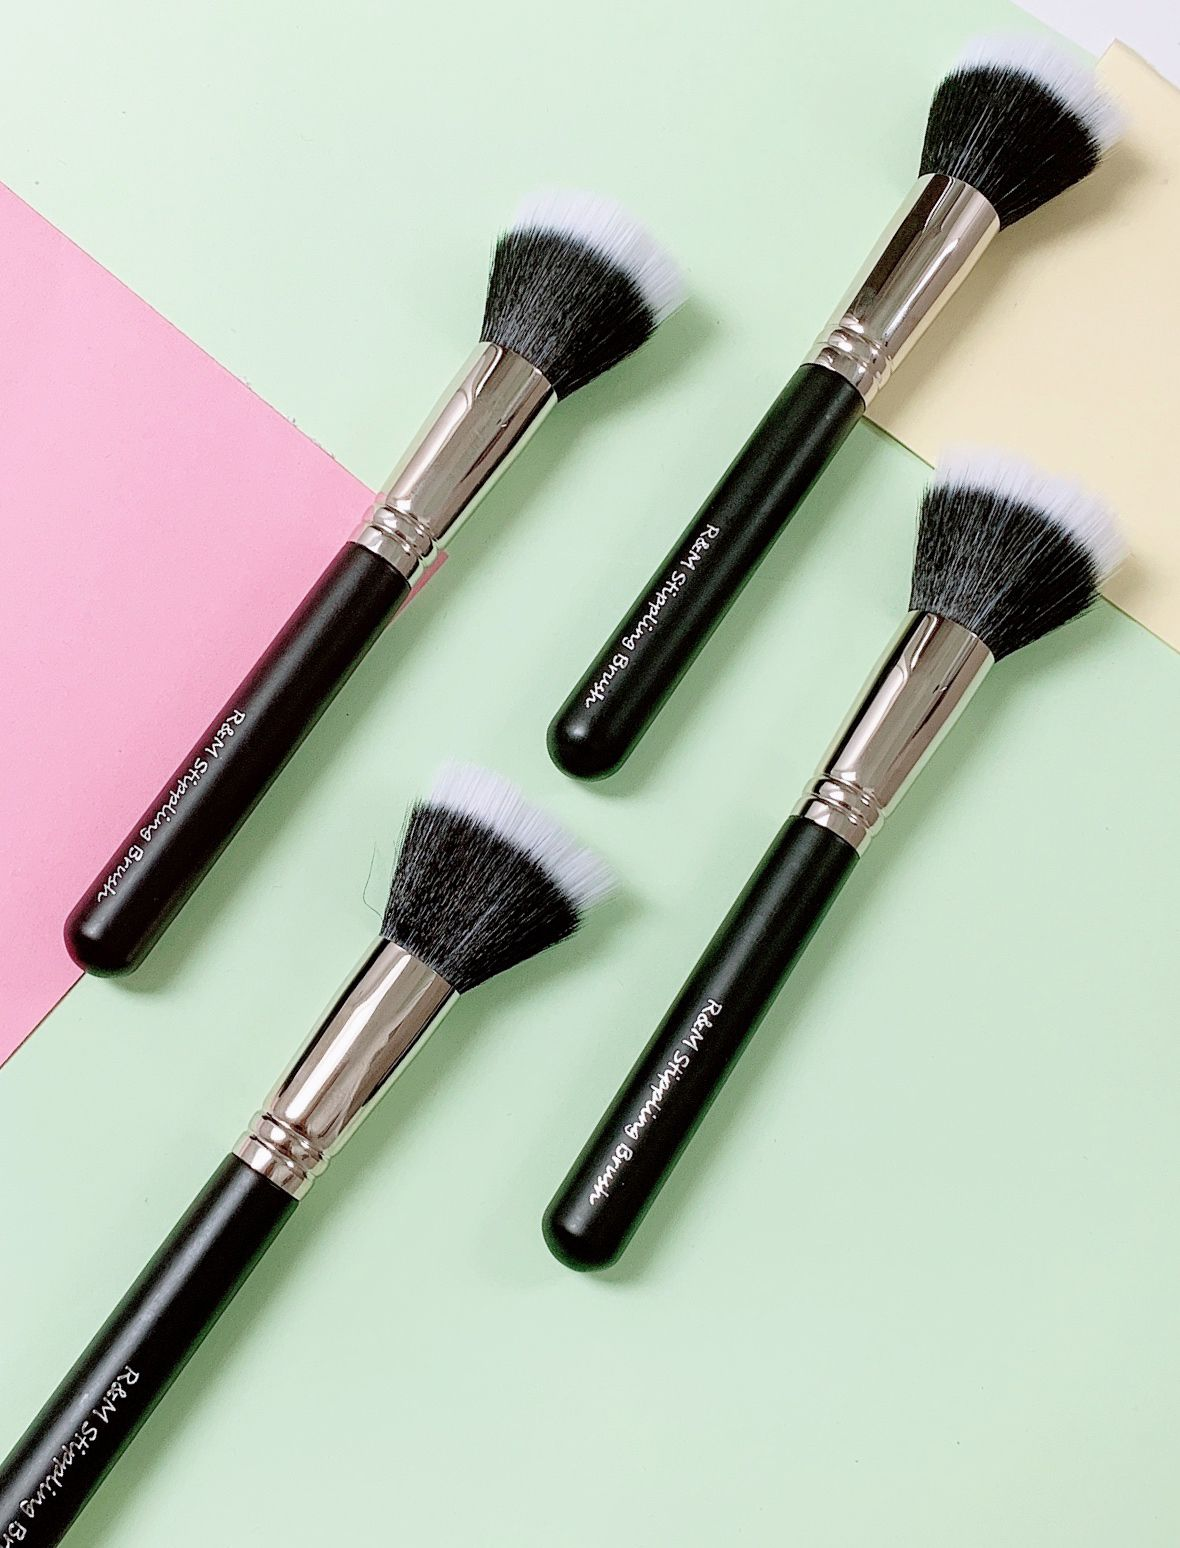 Stippling Foundation Brush available at Amazon Free